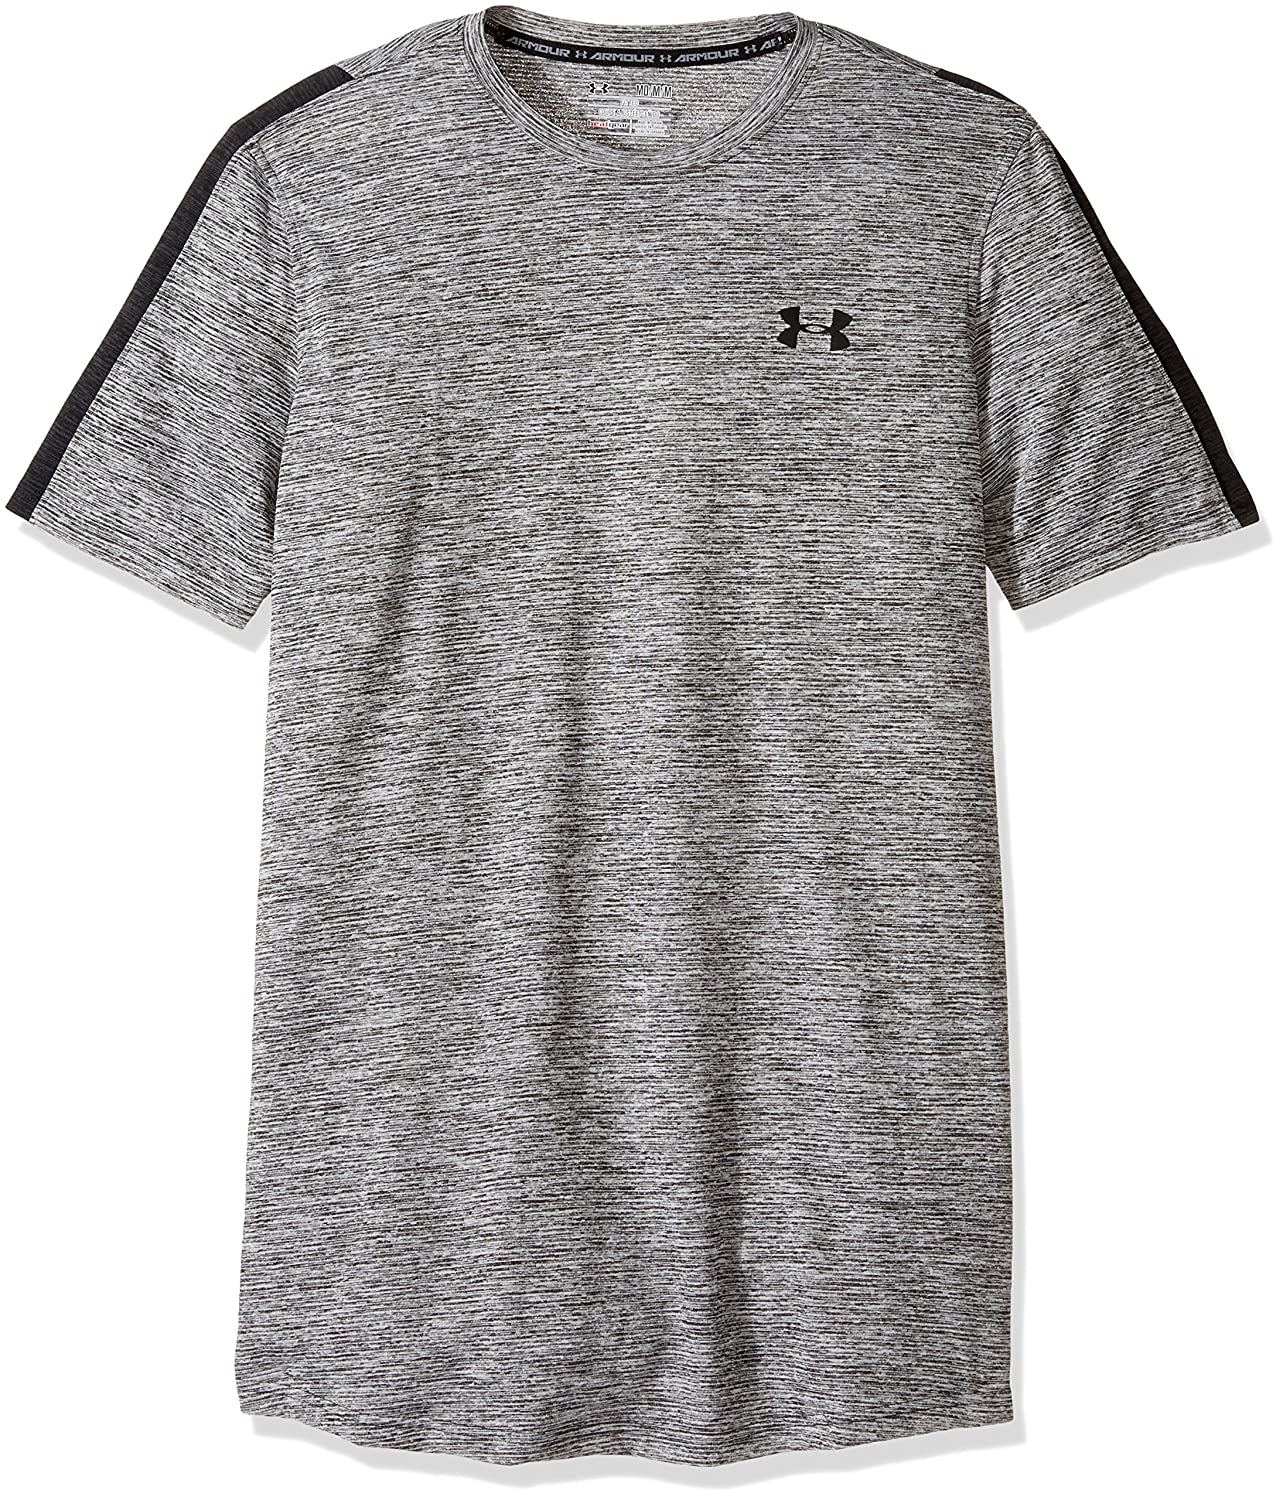 Under Armour Herren Raid Longline Short Sleeve T-Shirt